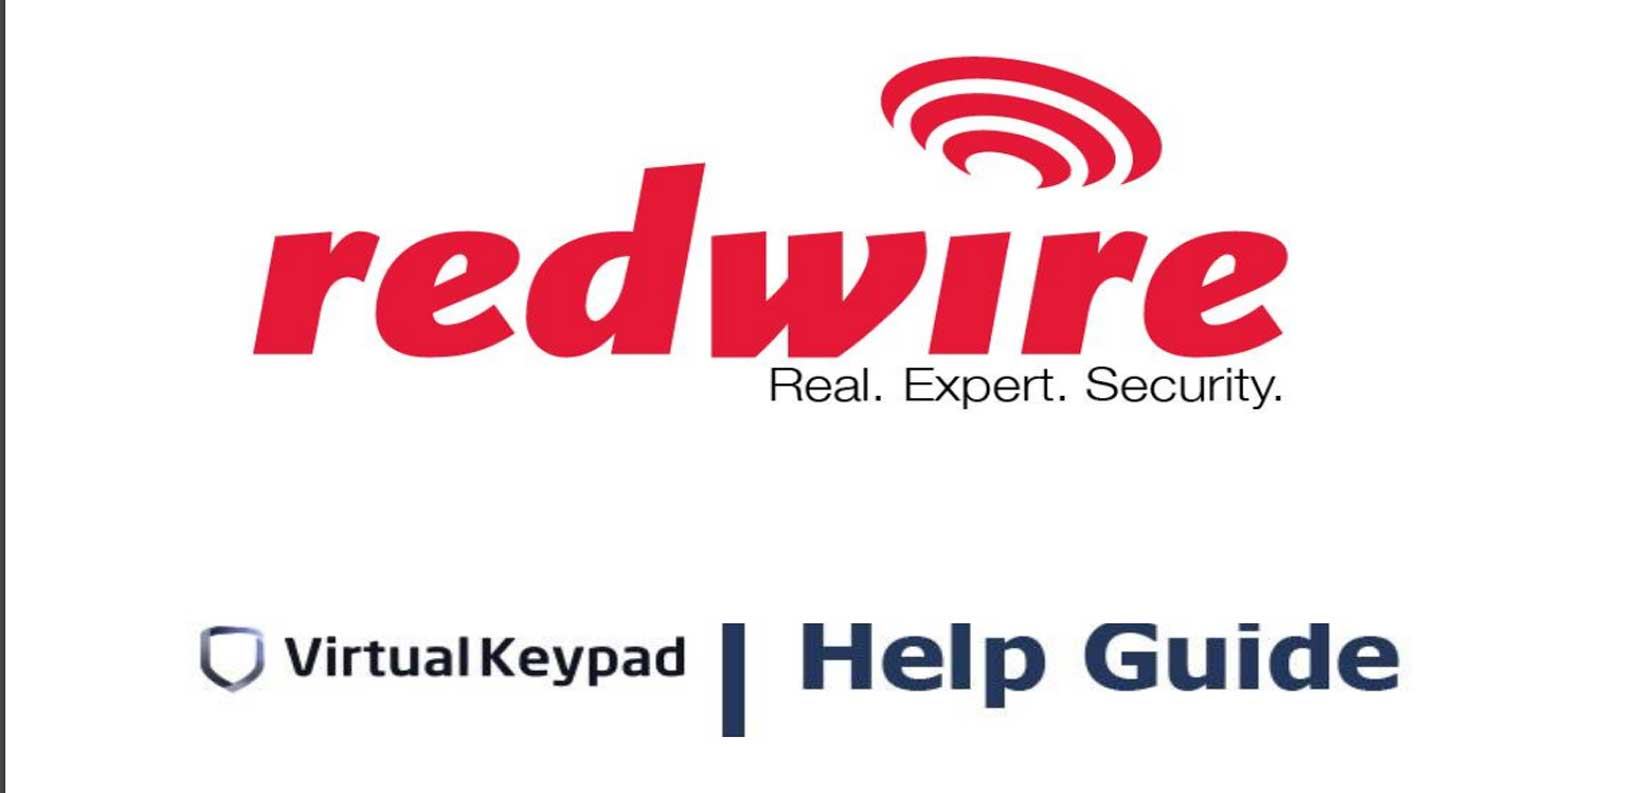 redwire-virtual-keypad-instructions